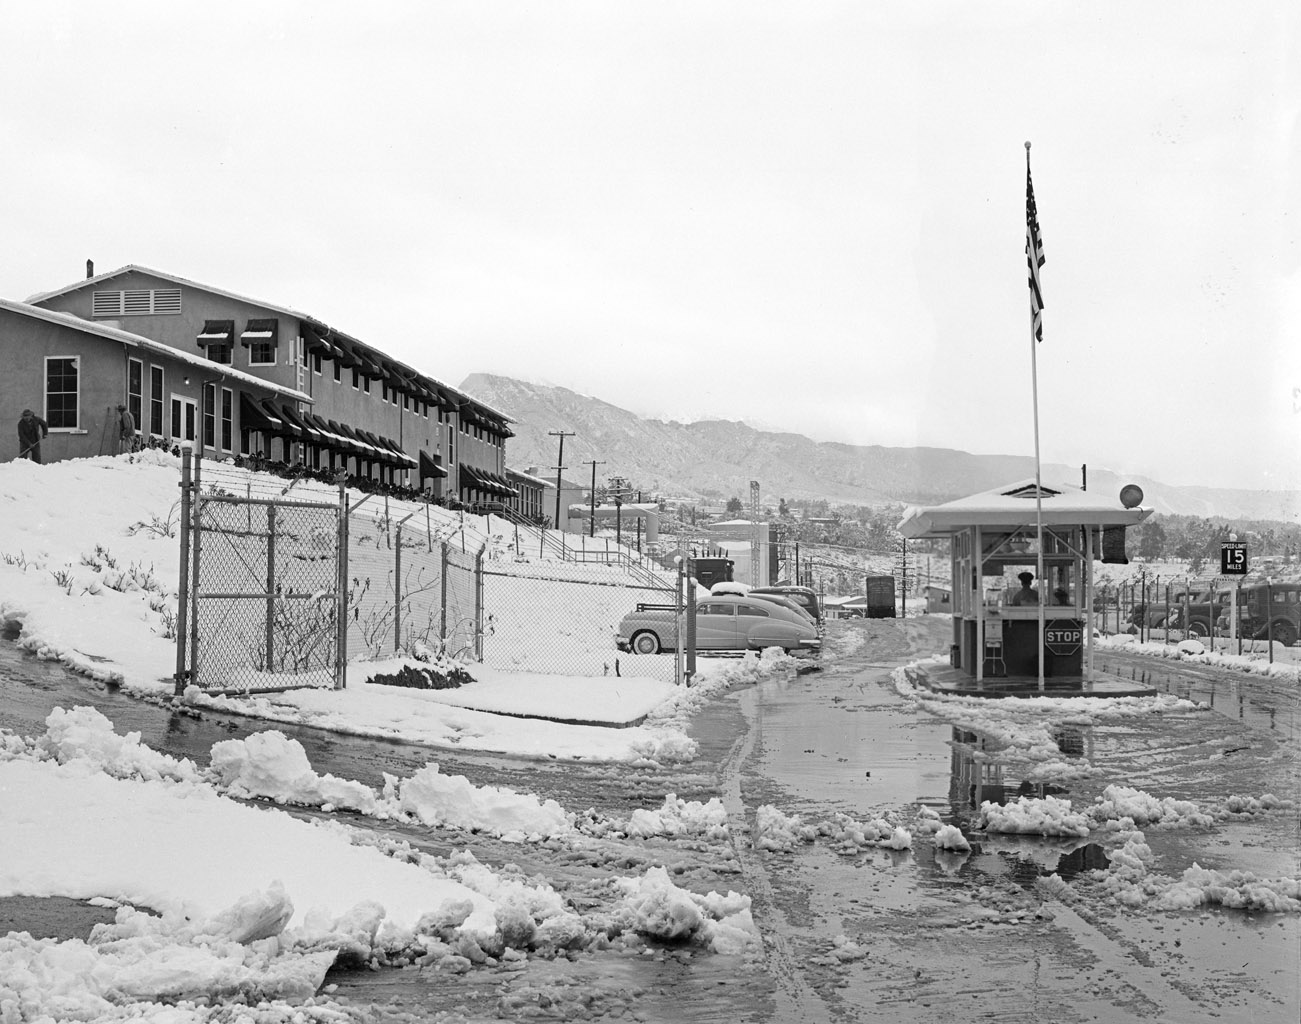 This archival photograph from 1949 shows the main entrance gate to the Jet Propulsion Laboratory in Pasadena, California, after a snowstorm. To the left is JPL's administration building at the time. Building 67 is the Materials Research Building today.